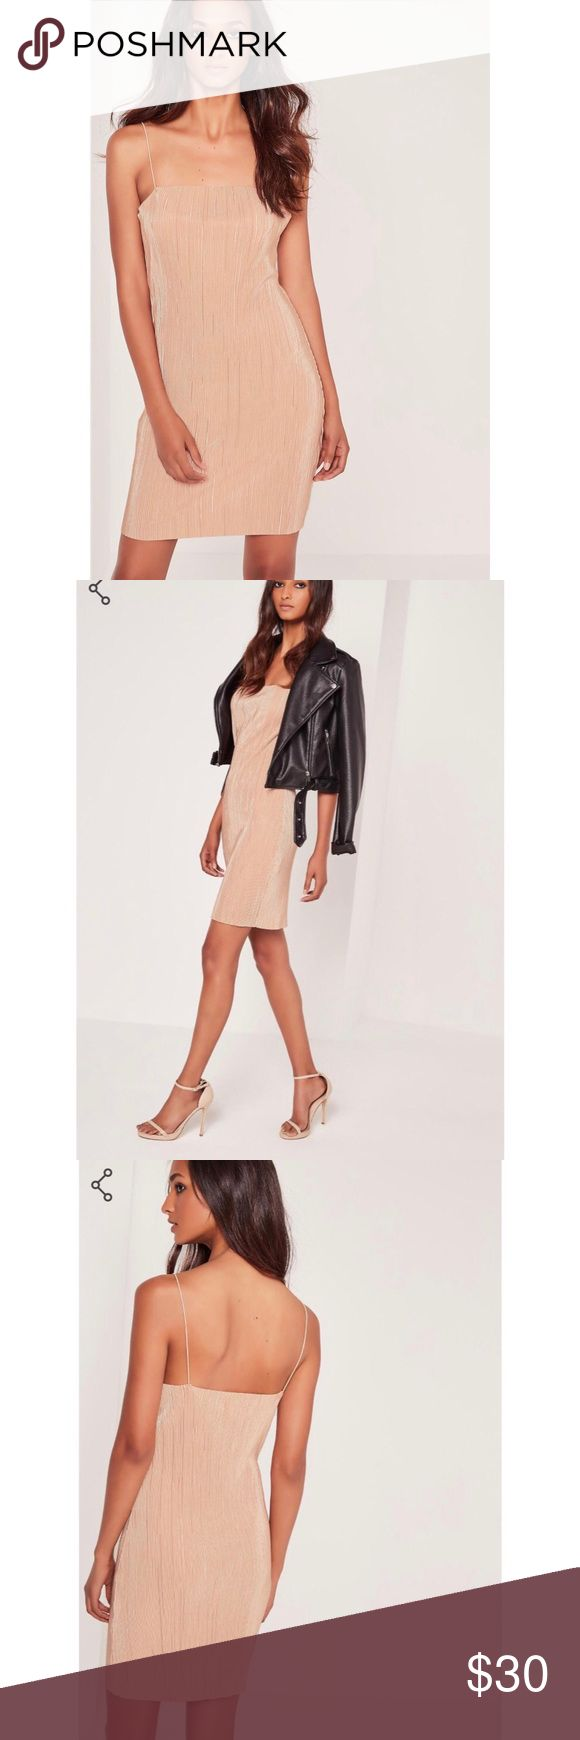 Missguided strappy pleated nude mini dress Missguided strappy nude pleated dress. Very comfortable. The shape of the dress is more like a shift dress. Size 4 which is an XS/S. Missguided Dresses